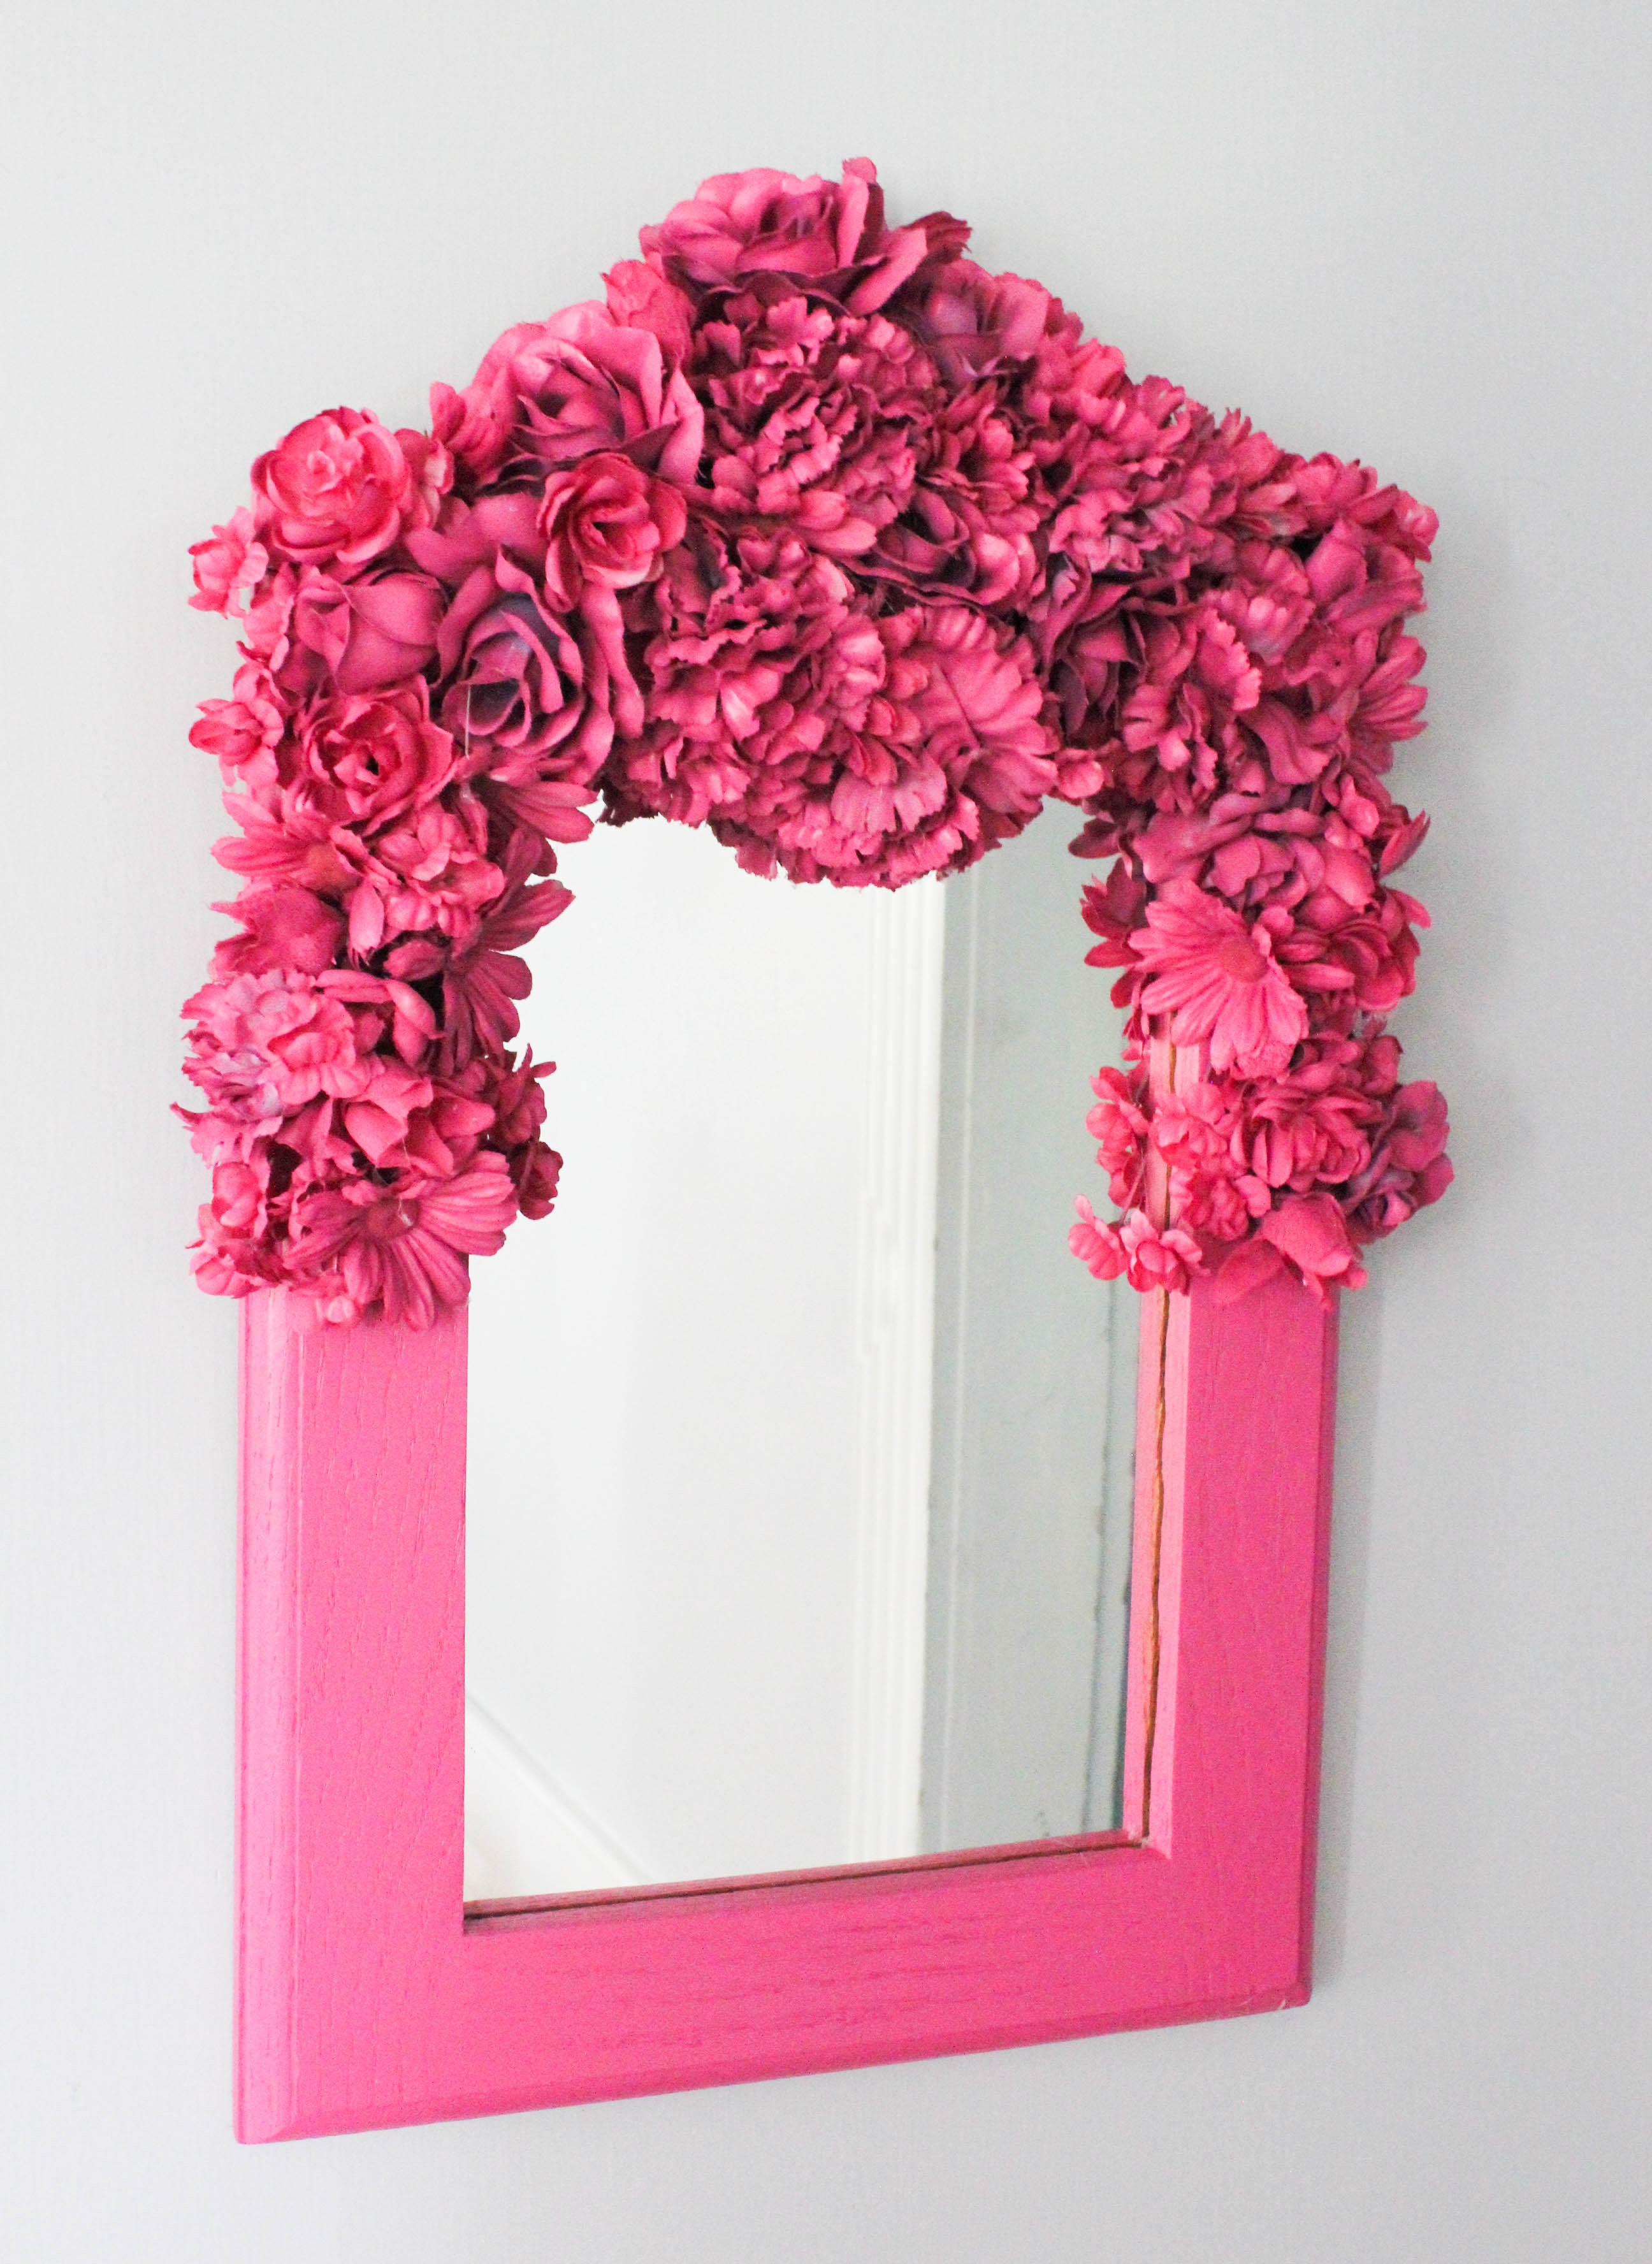 Transform A Plain Mirror With Flowers And Spray Paint Goodwill